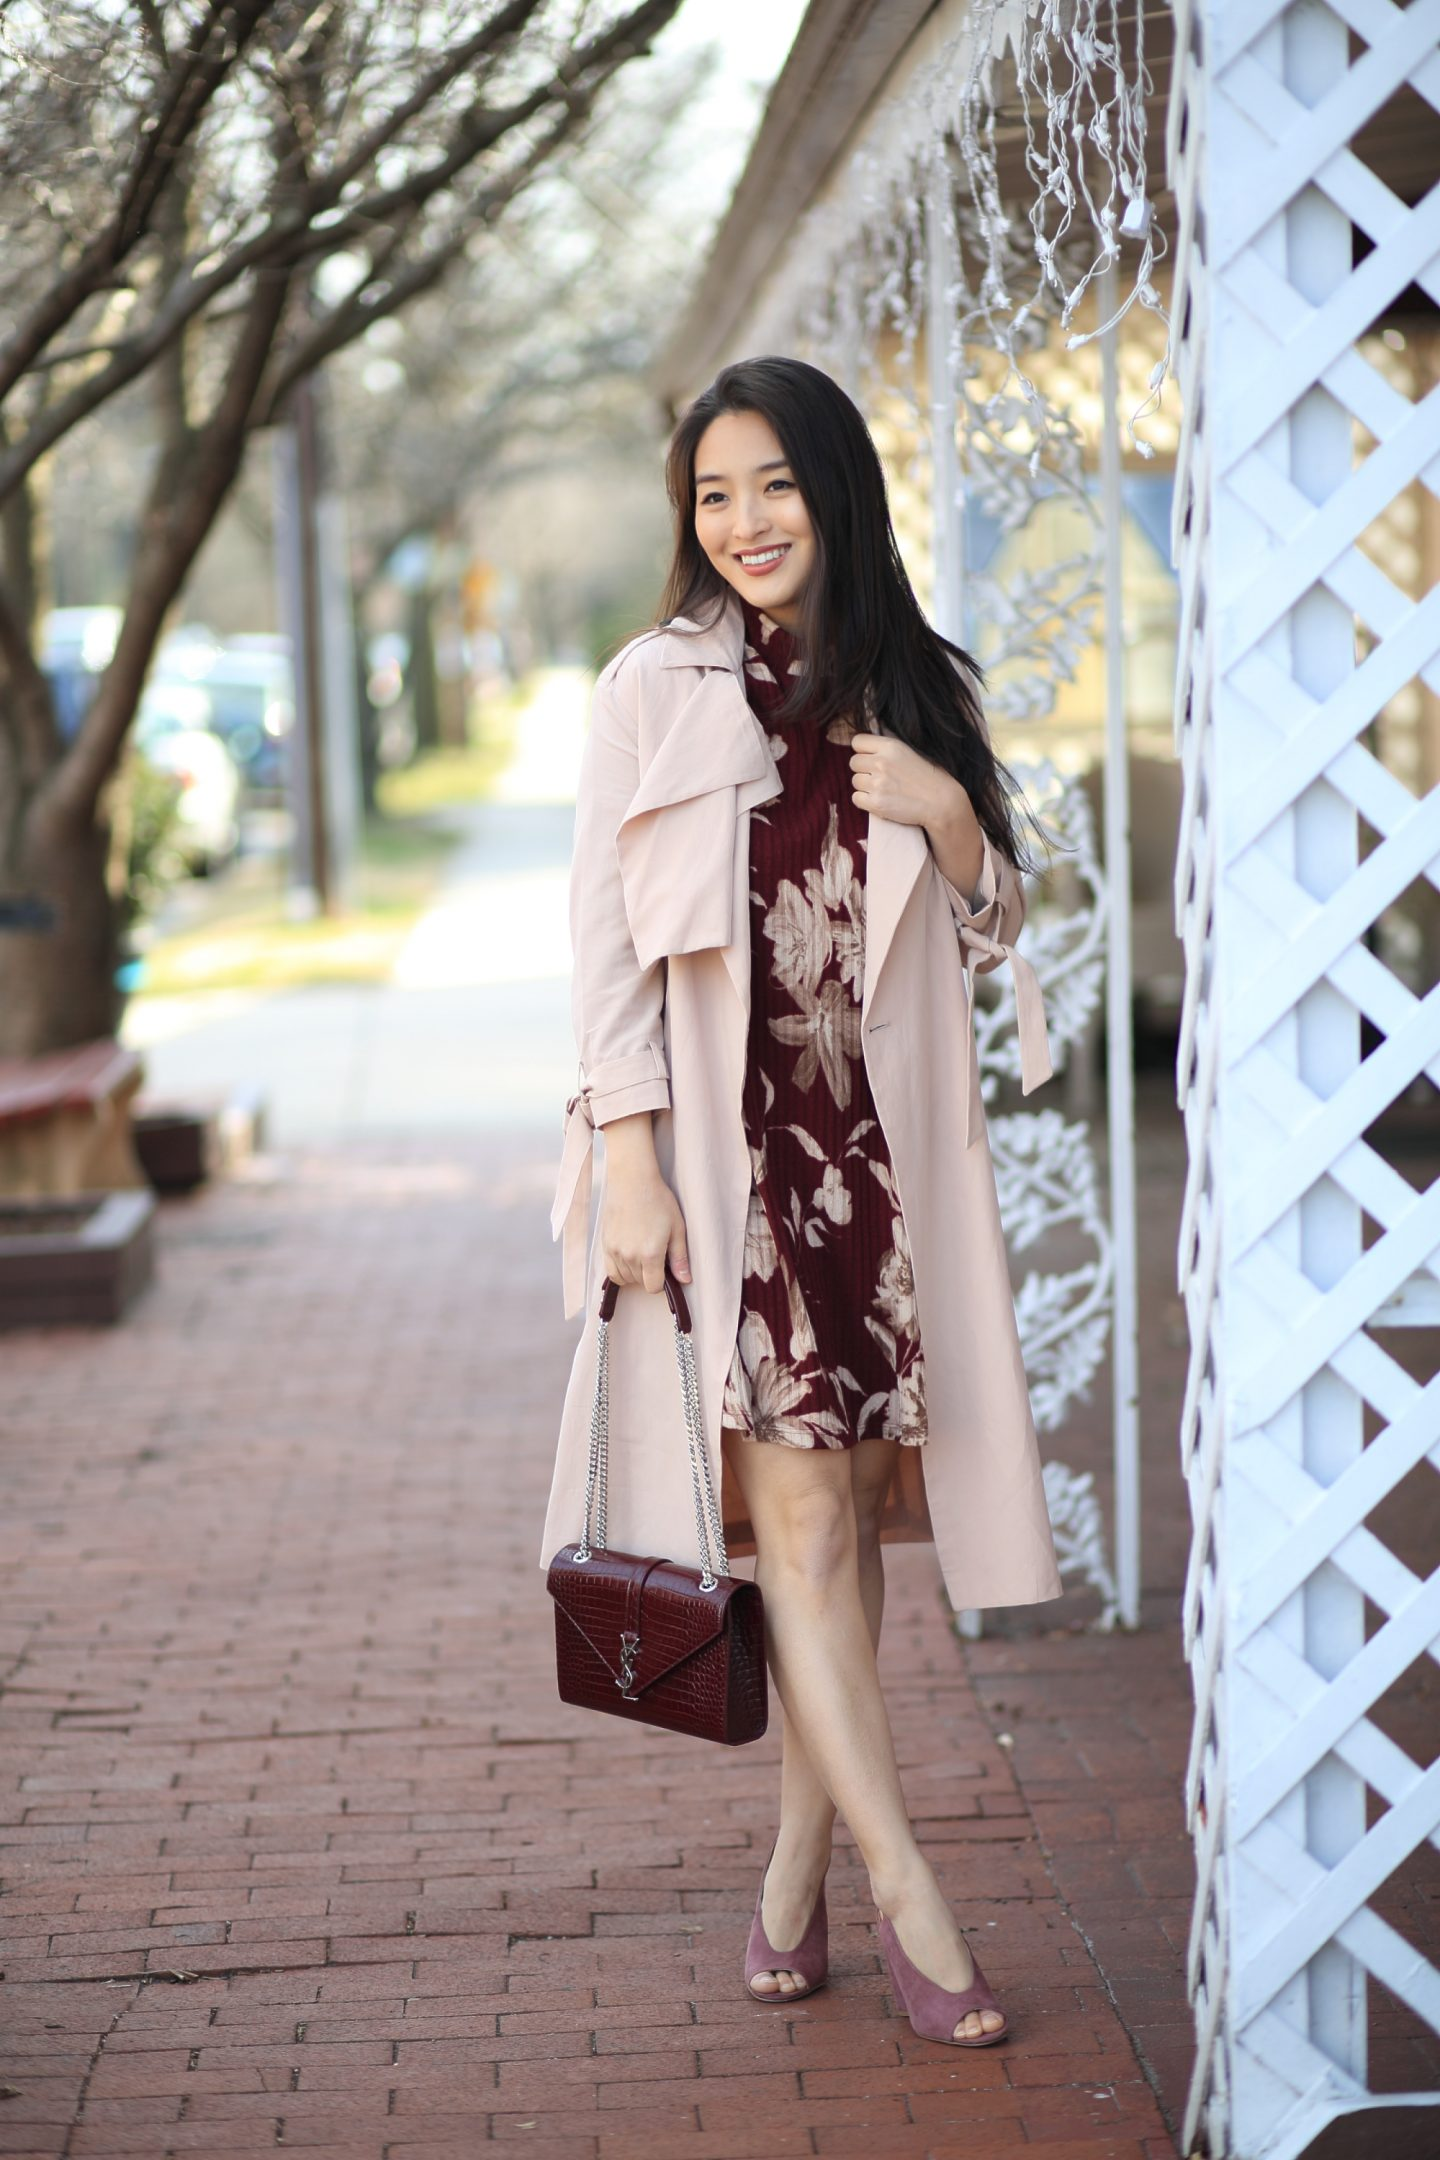 Hailey Raine Boutique:  The $20 Dress You NEED